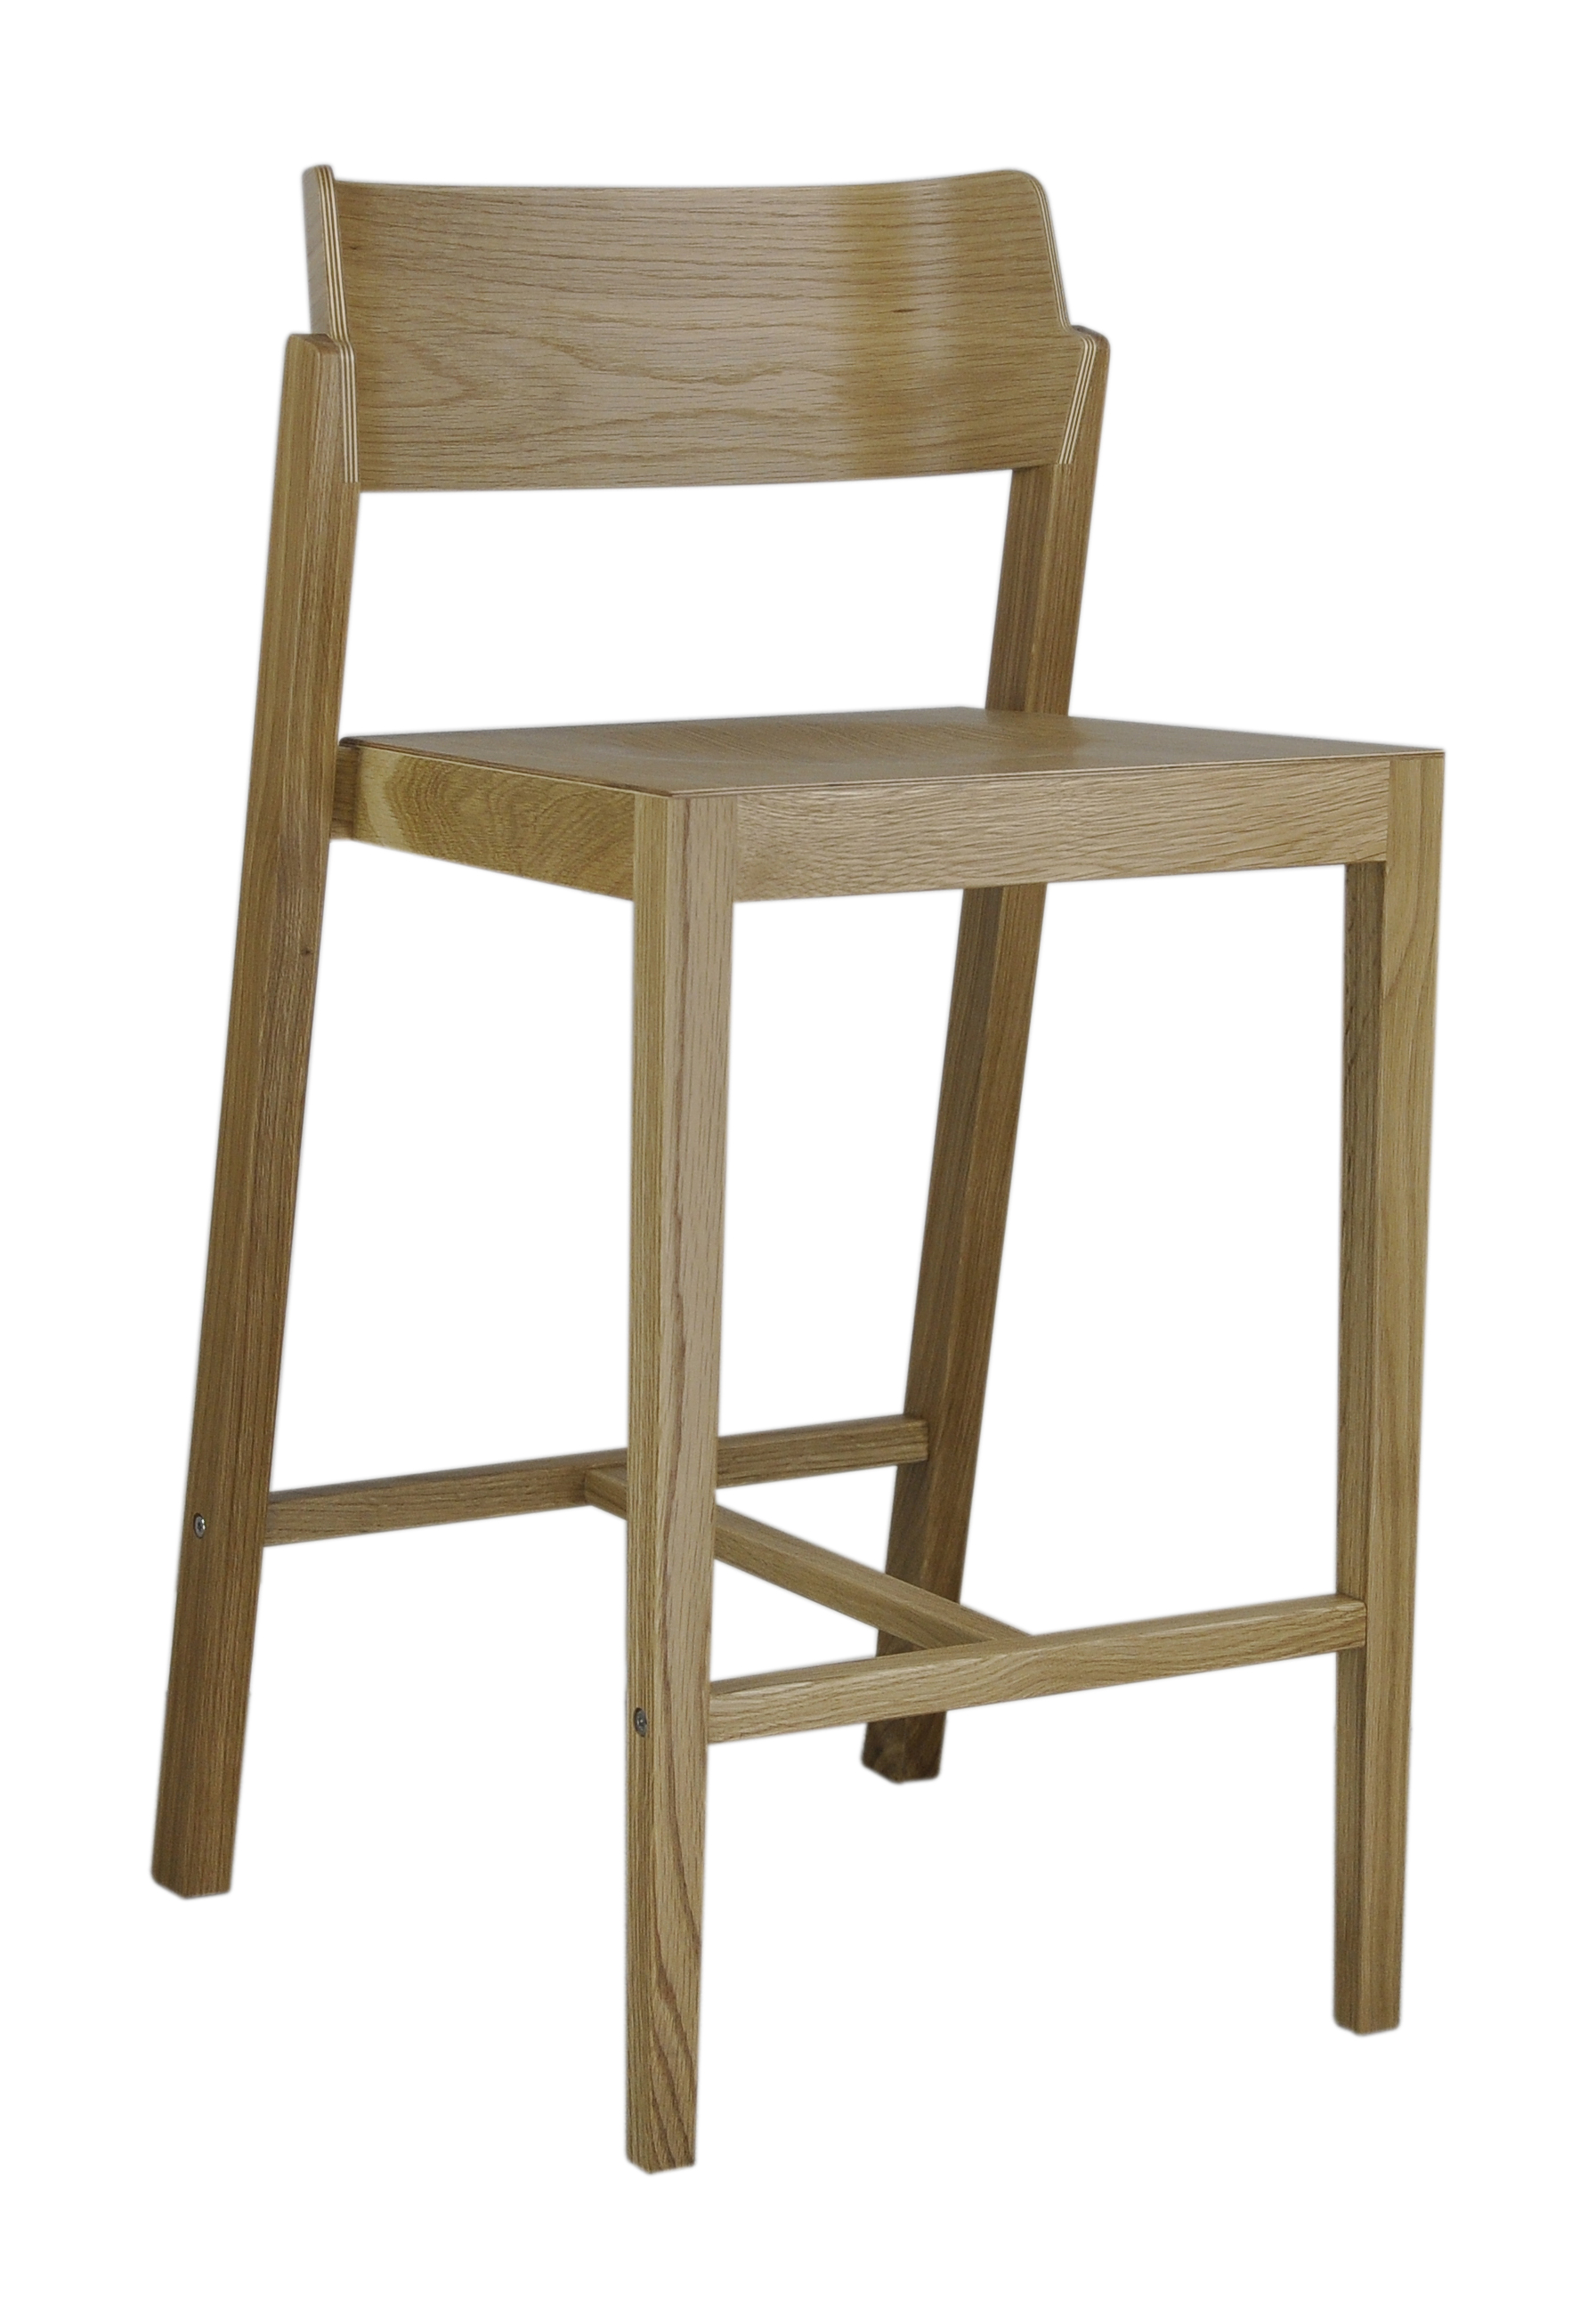 The 100 Counter Stool in oak